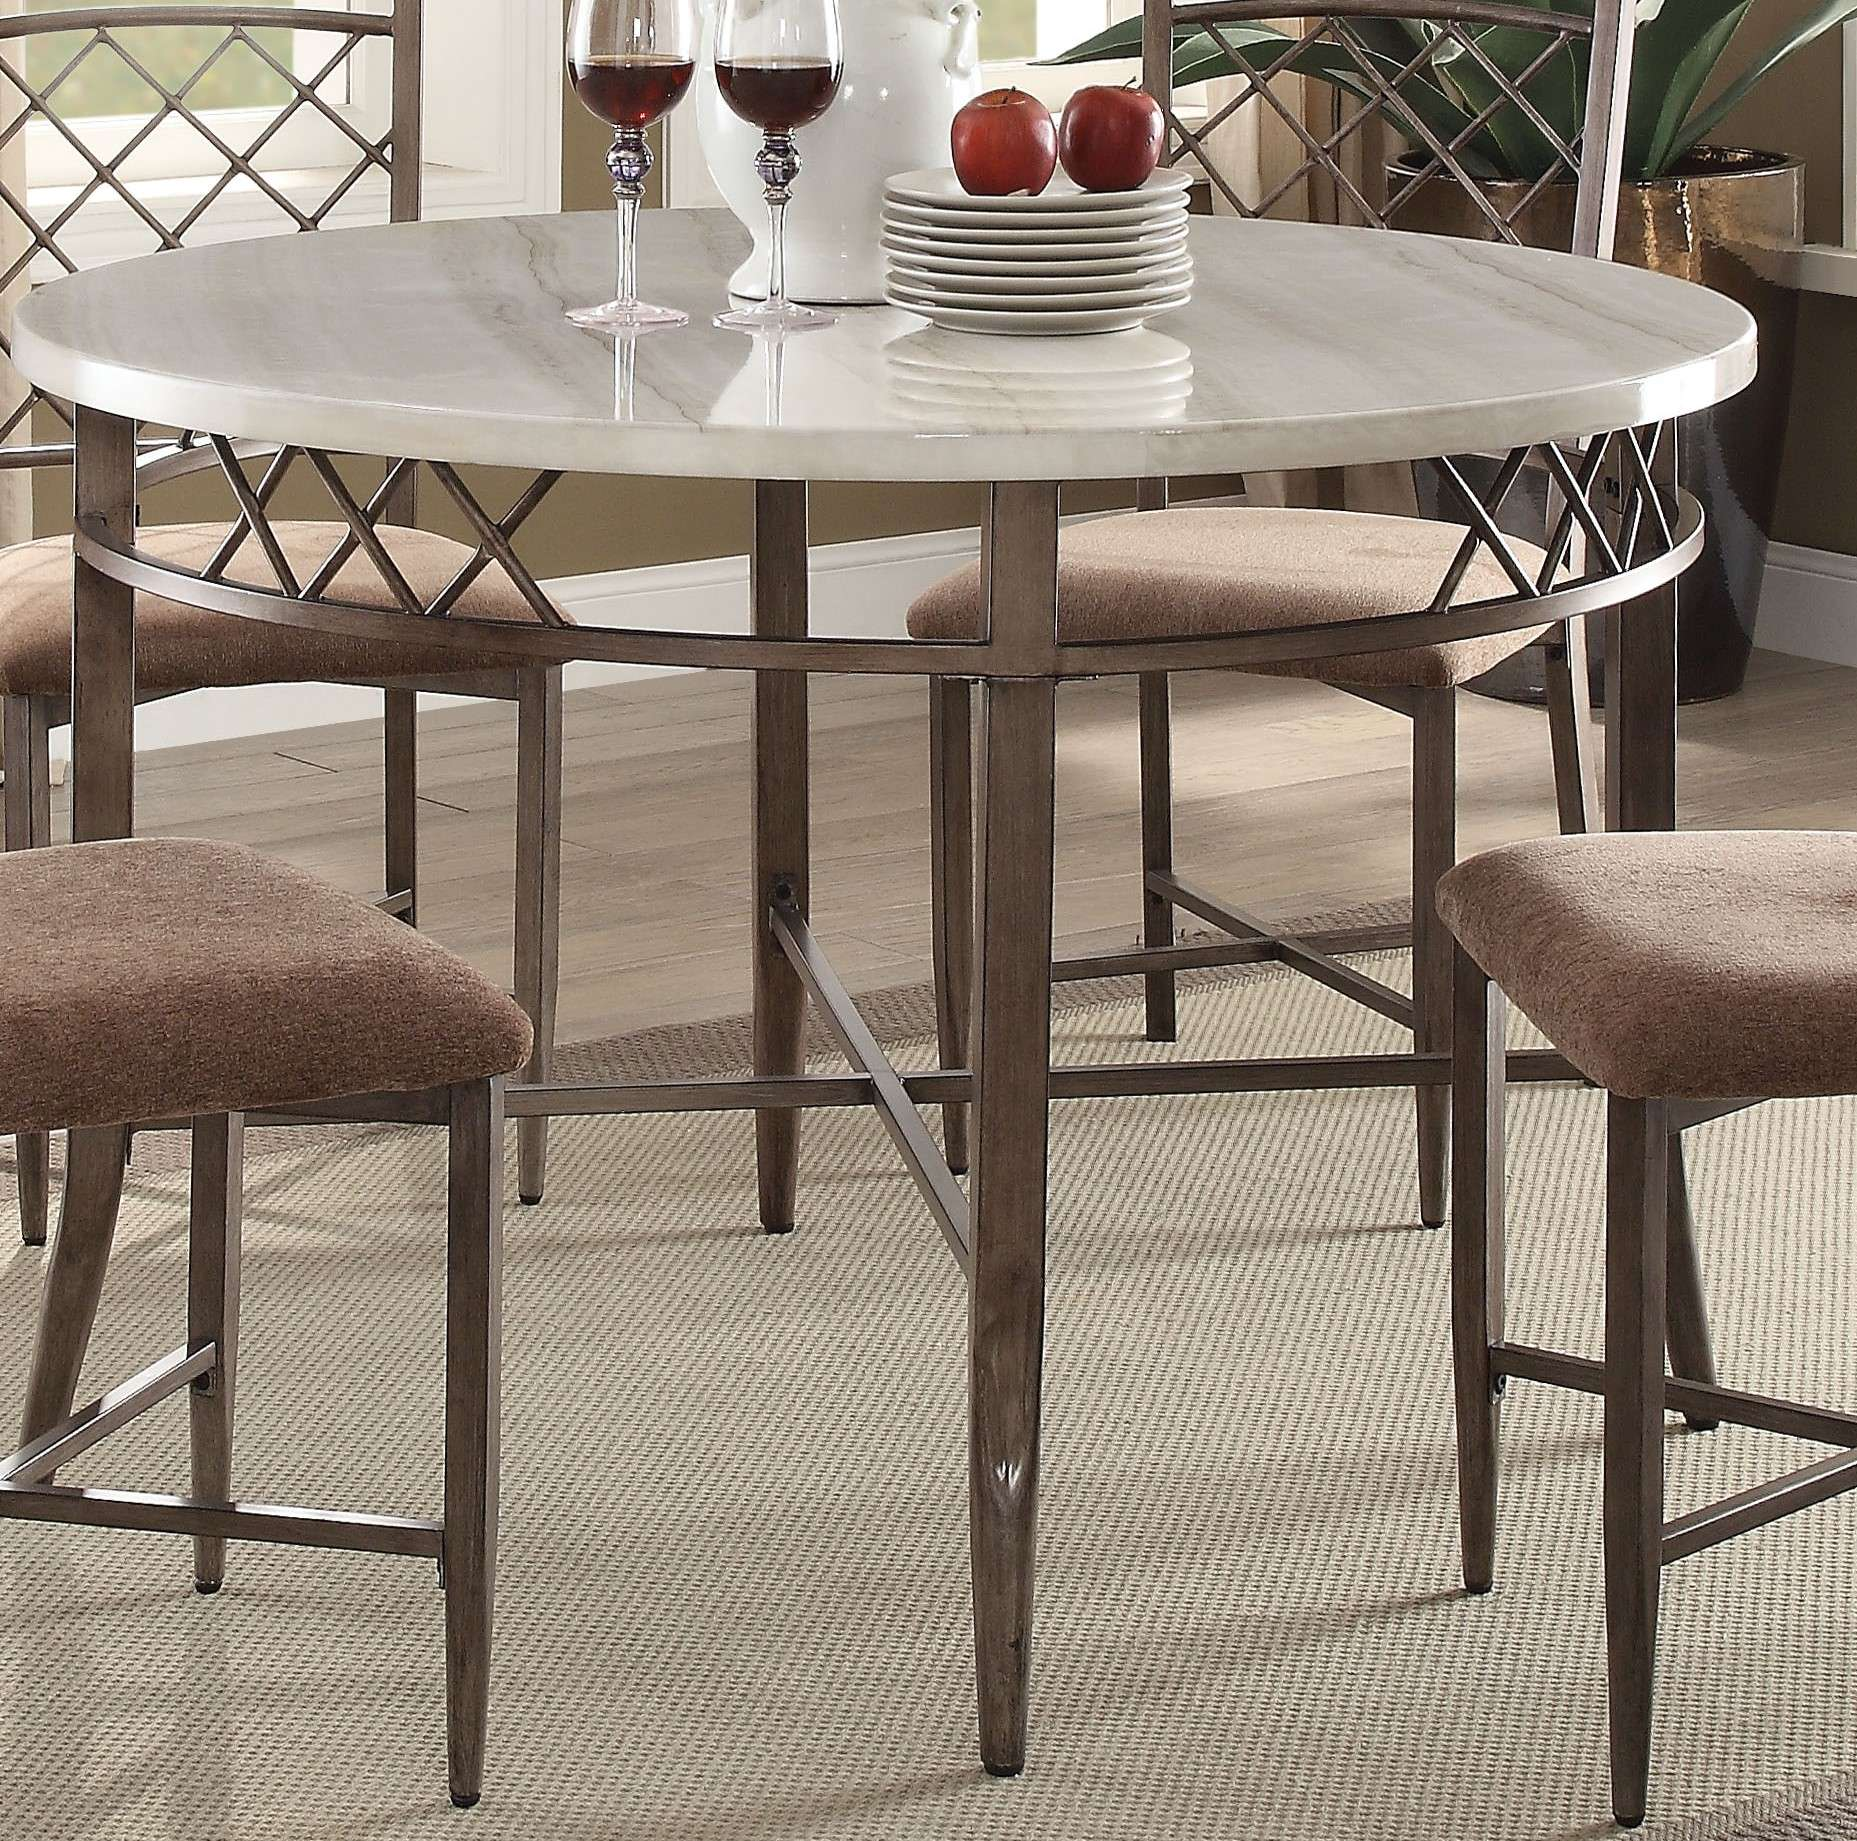 Sensational Acme Furniture Aldric Cream Faux Marble Antique Brown Dining Table Reviews Goedekers Com Pdpeps Interior Chair Design Pdpepsorg